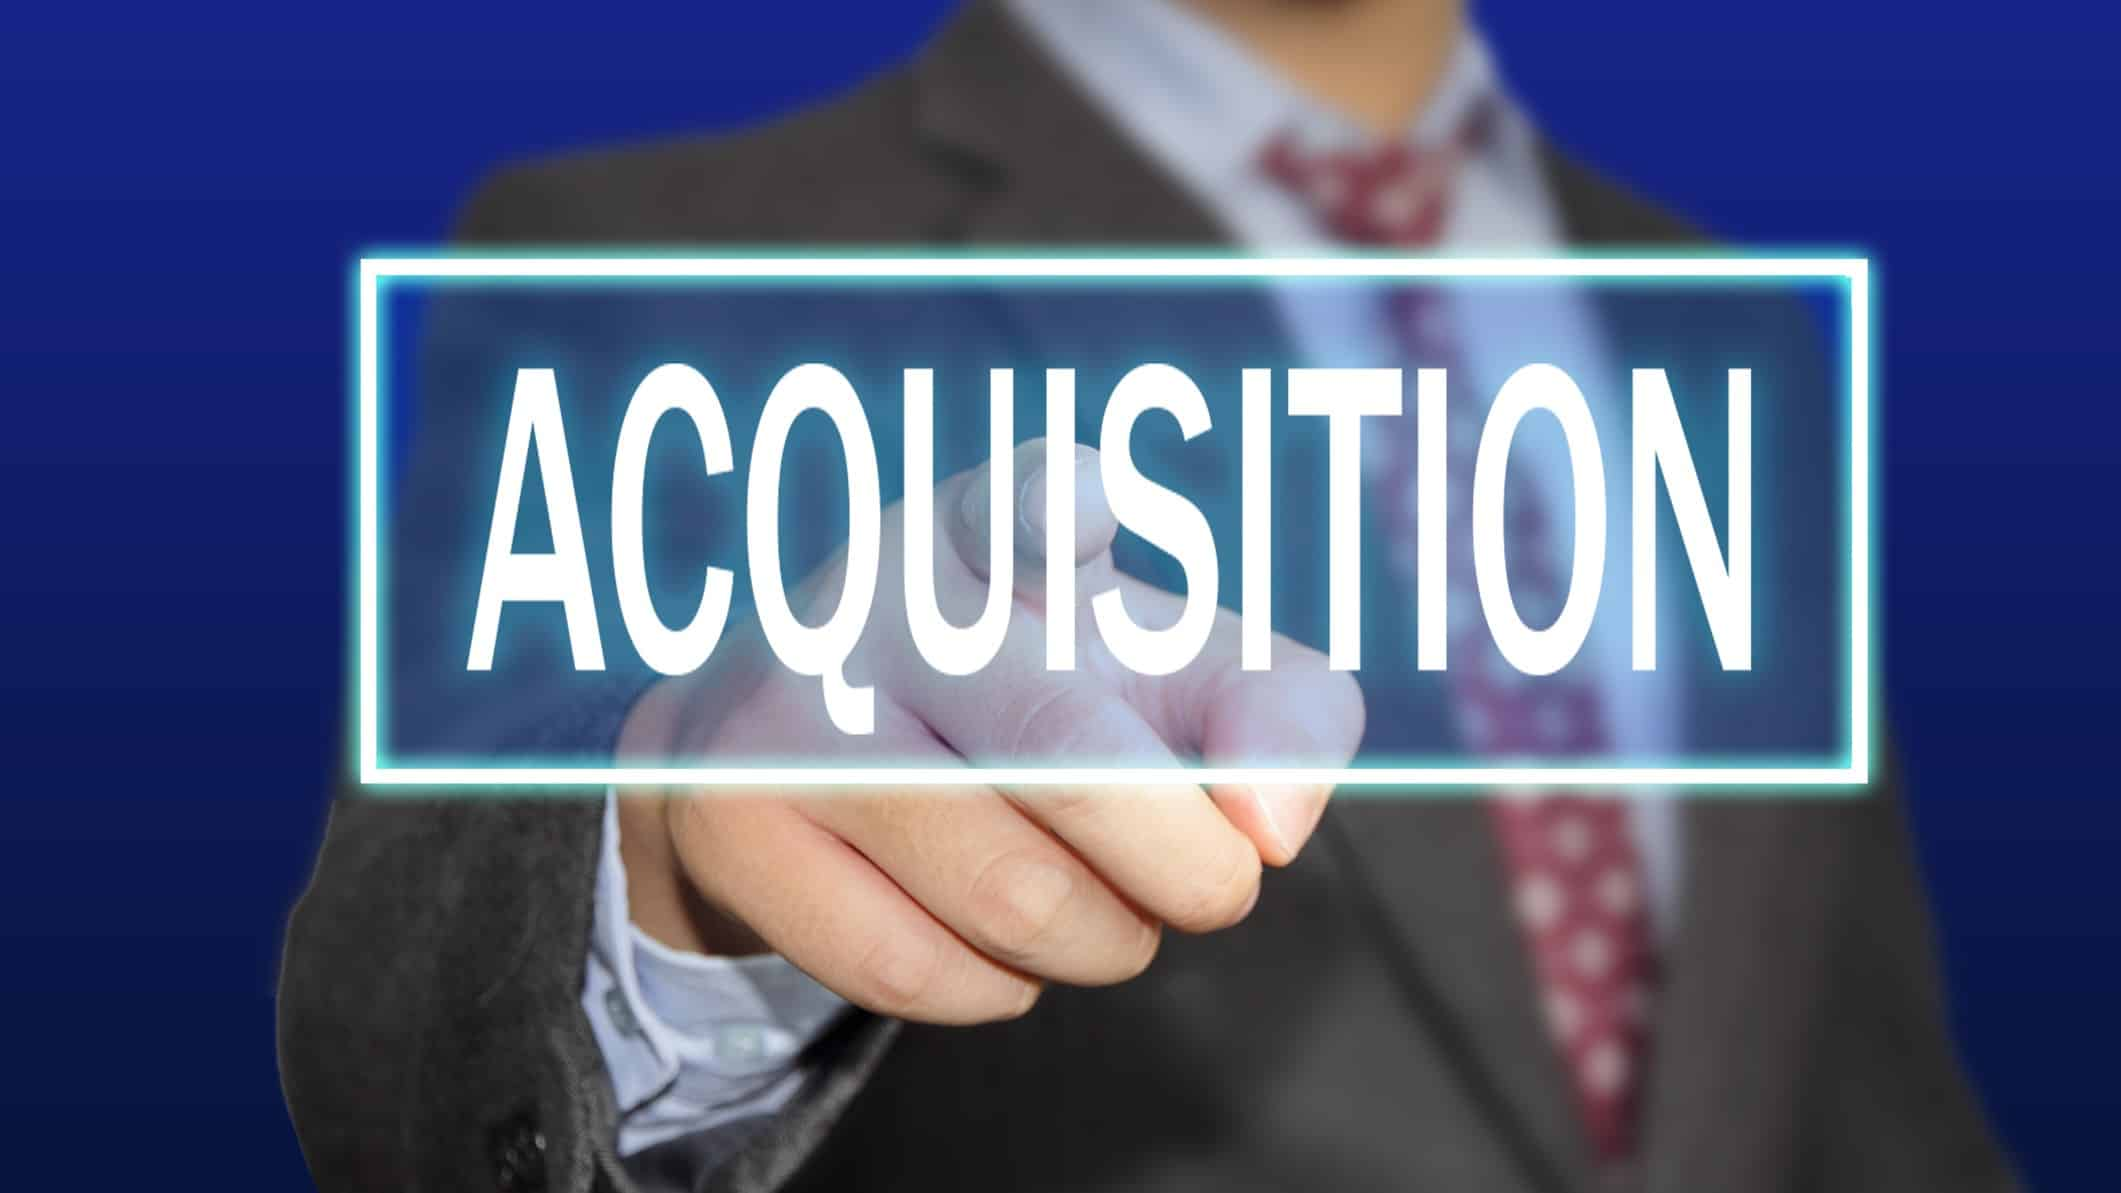 changing asx share price from acqusition represented by man reaching out to touch acquisition sign